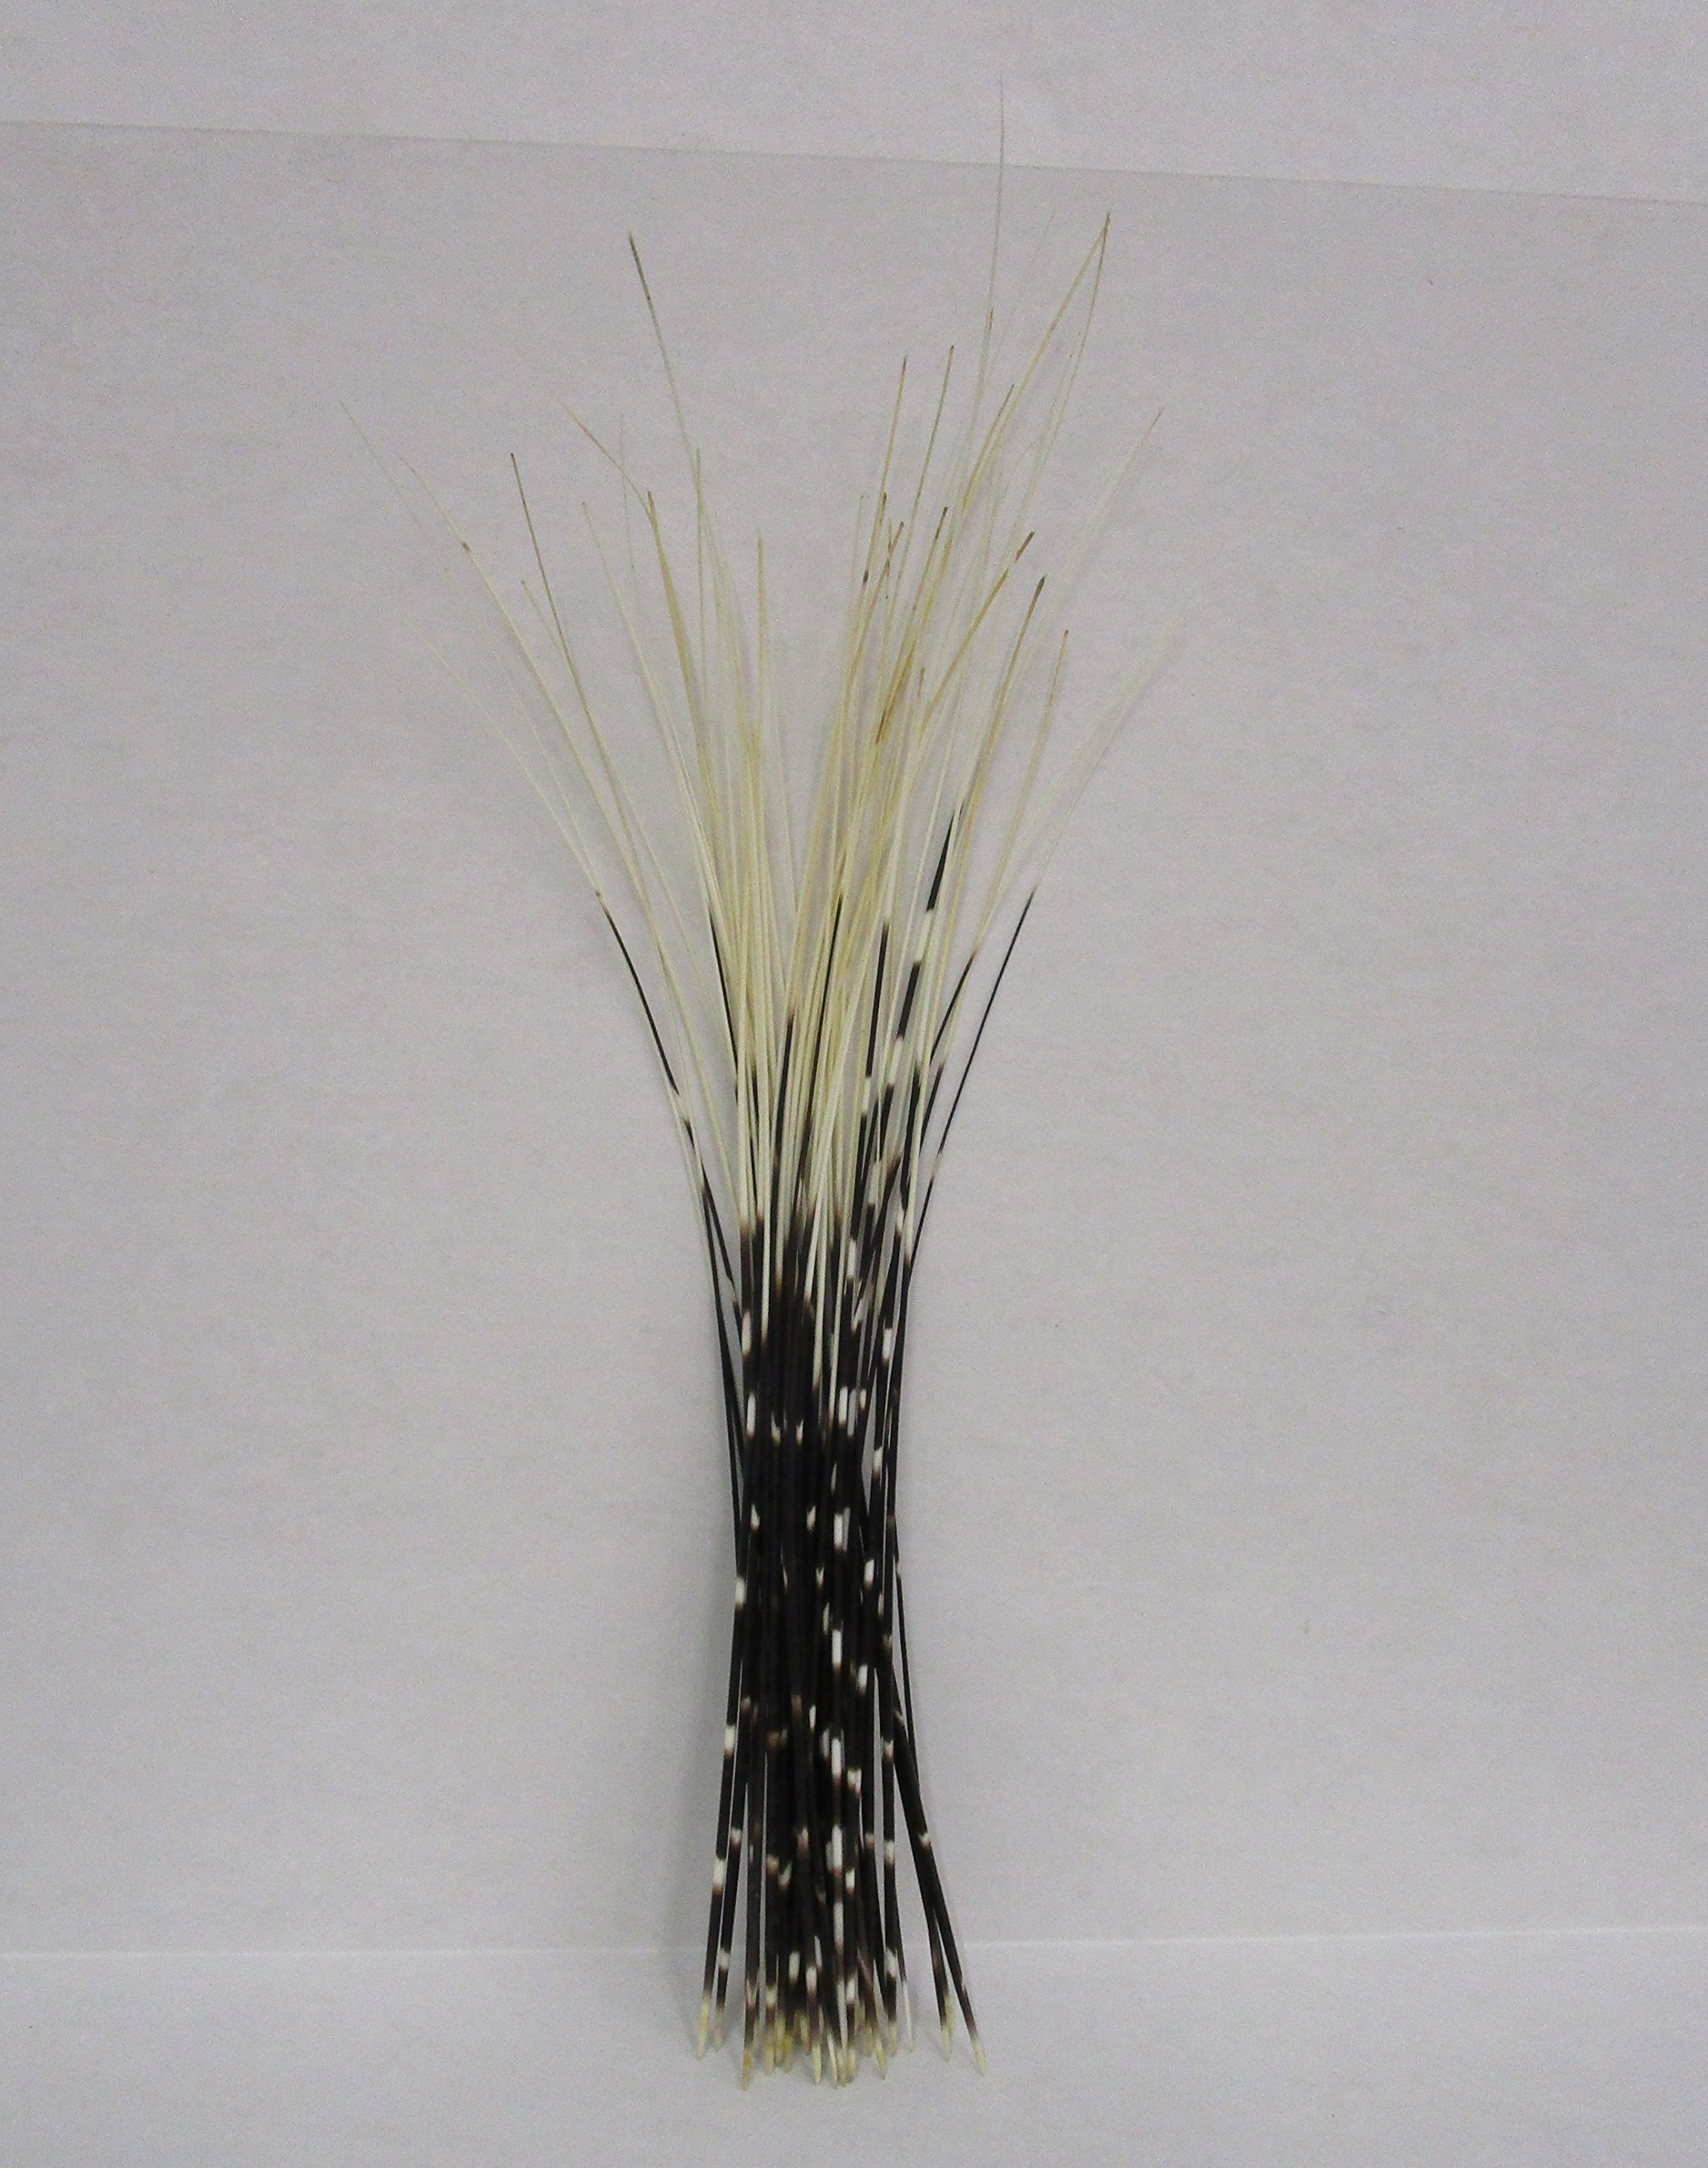 50 pc Thin South African Porcupine quills 18 inch and up by Atlantic Coral Enterprise